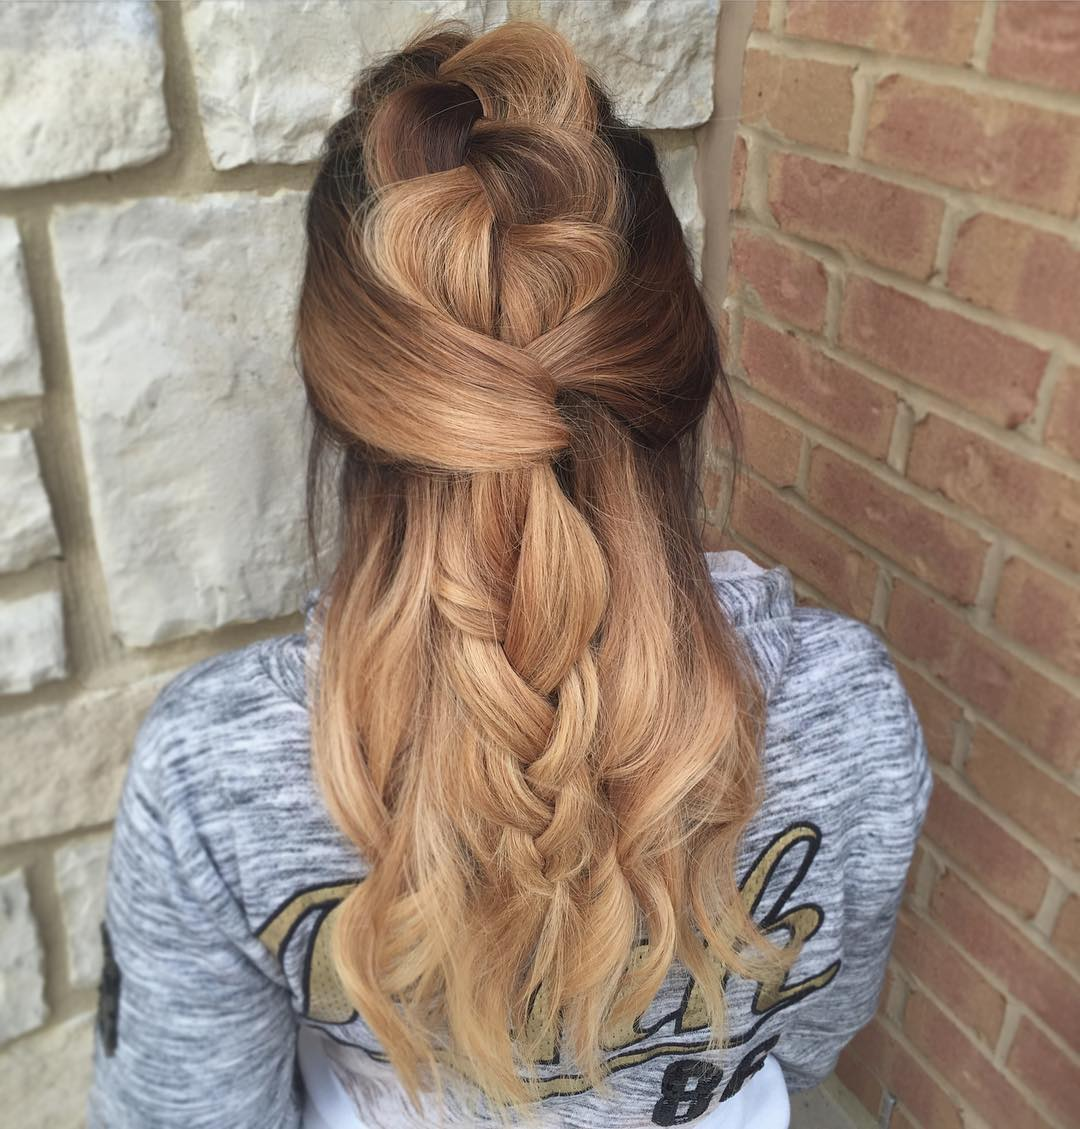 Hairstyles For Long Hair Night Out : Night Out Hairstyles For Long Hair newhairstylesformen2014.com